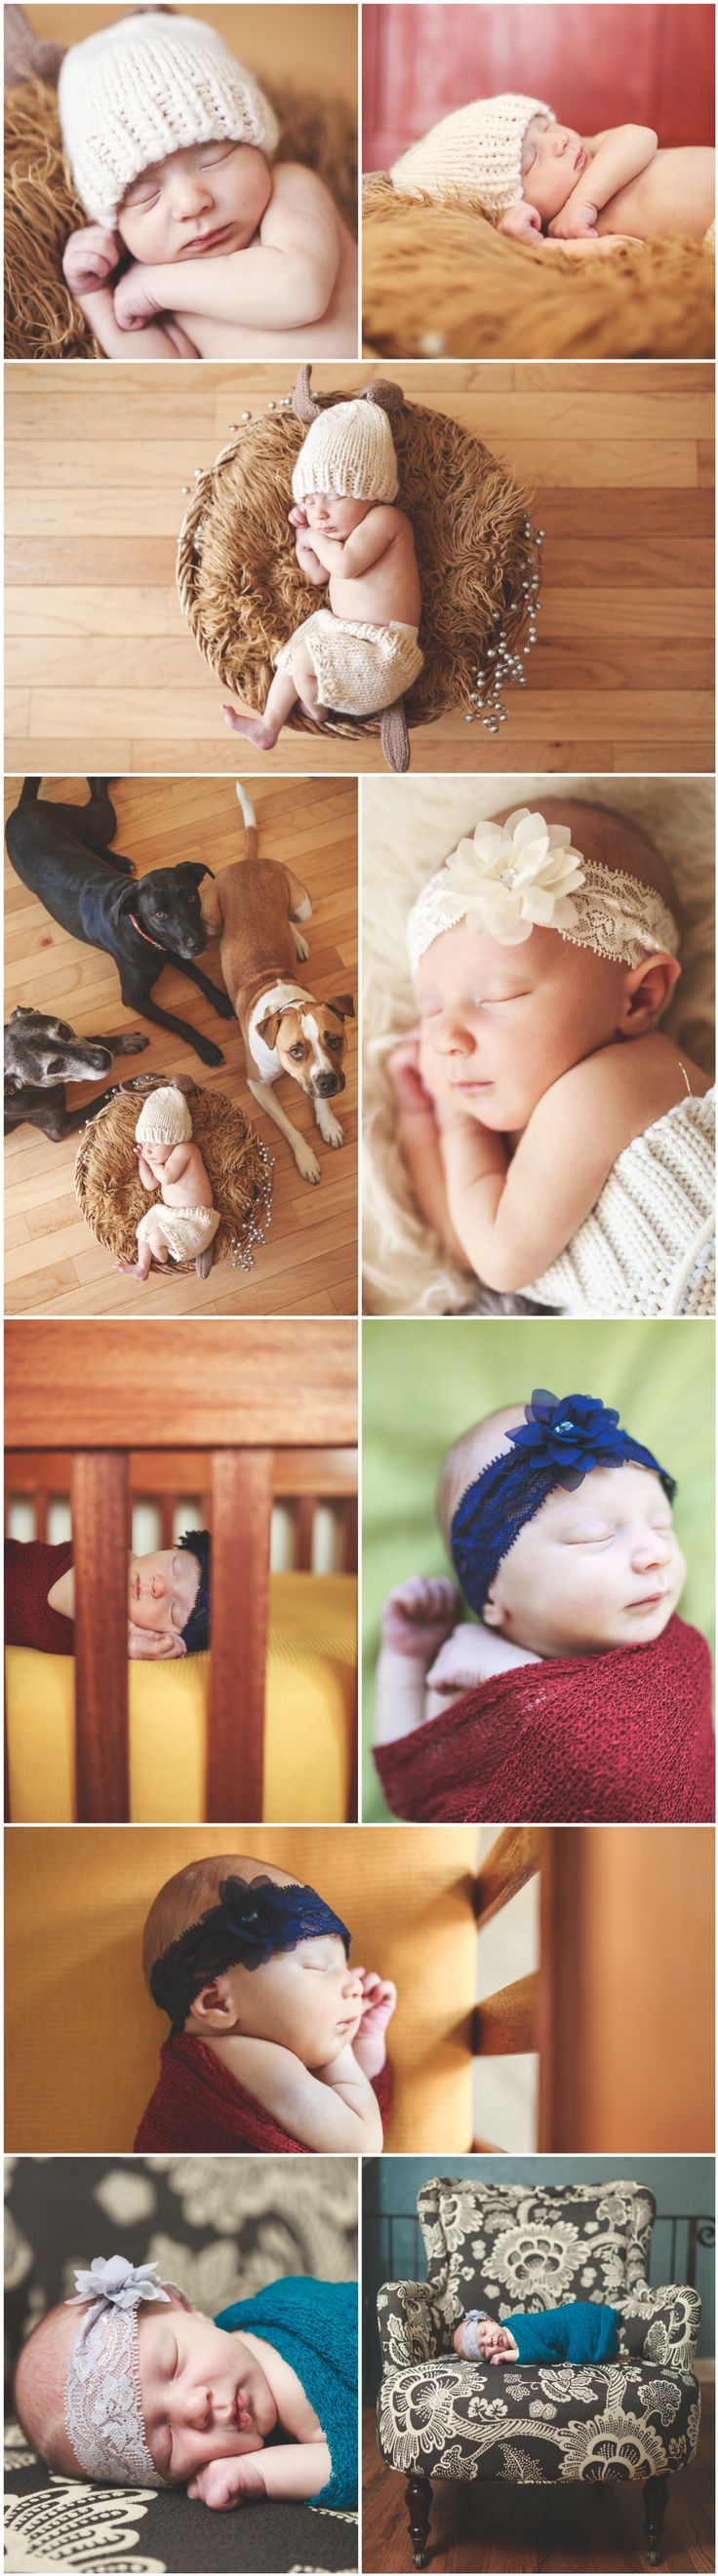 Newborn Photography Ideas and Inspiration   Newborn Poses   Denver Newborn Photographers   Cute Newborn Portraits with Dogs and Pets